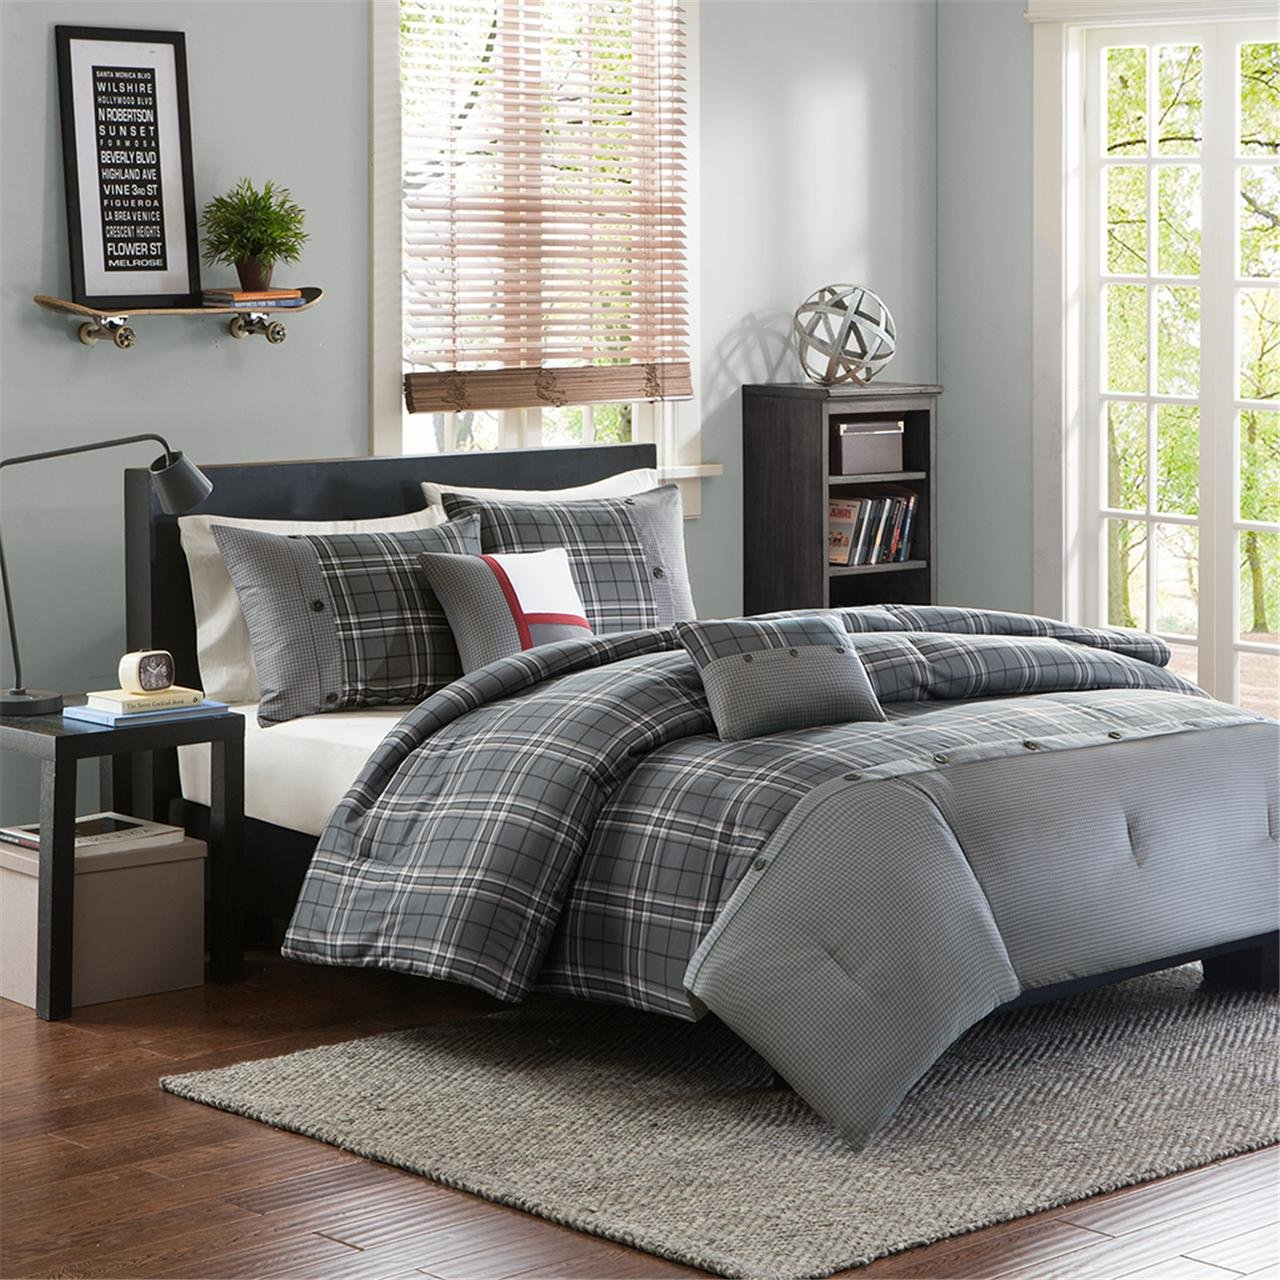 Intelligent Design Daryl 5 Piece Comforter Set, Full/Queen, Grey